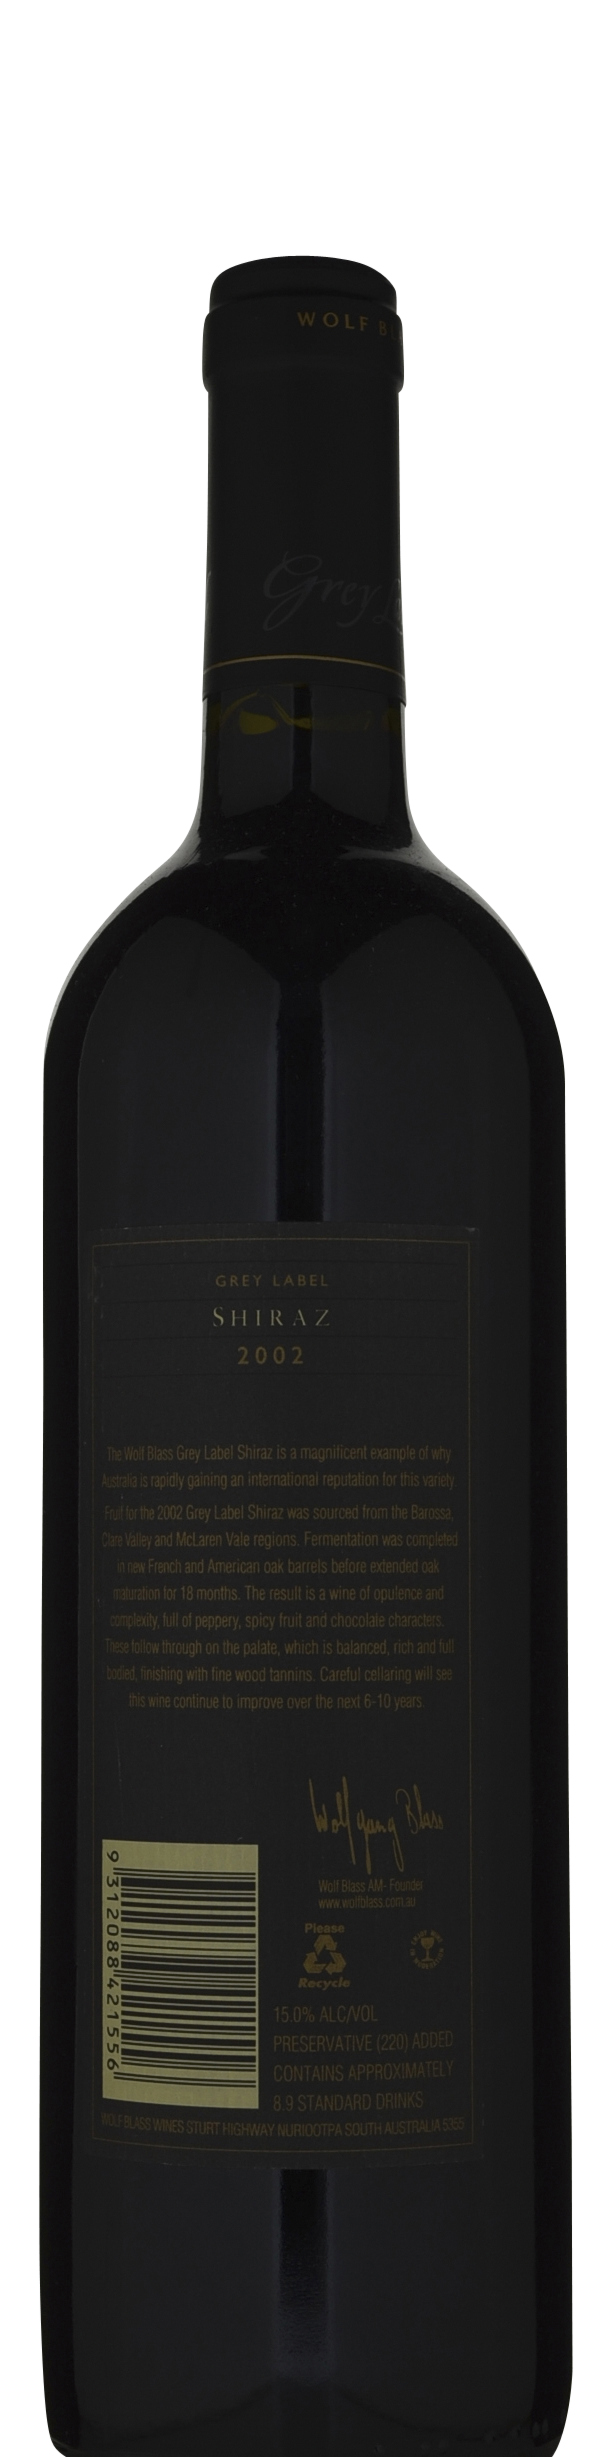 It is an image of Adaptable Wolf Blass Grey Label Shiraz 2013 Review